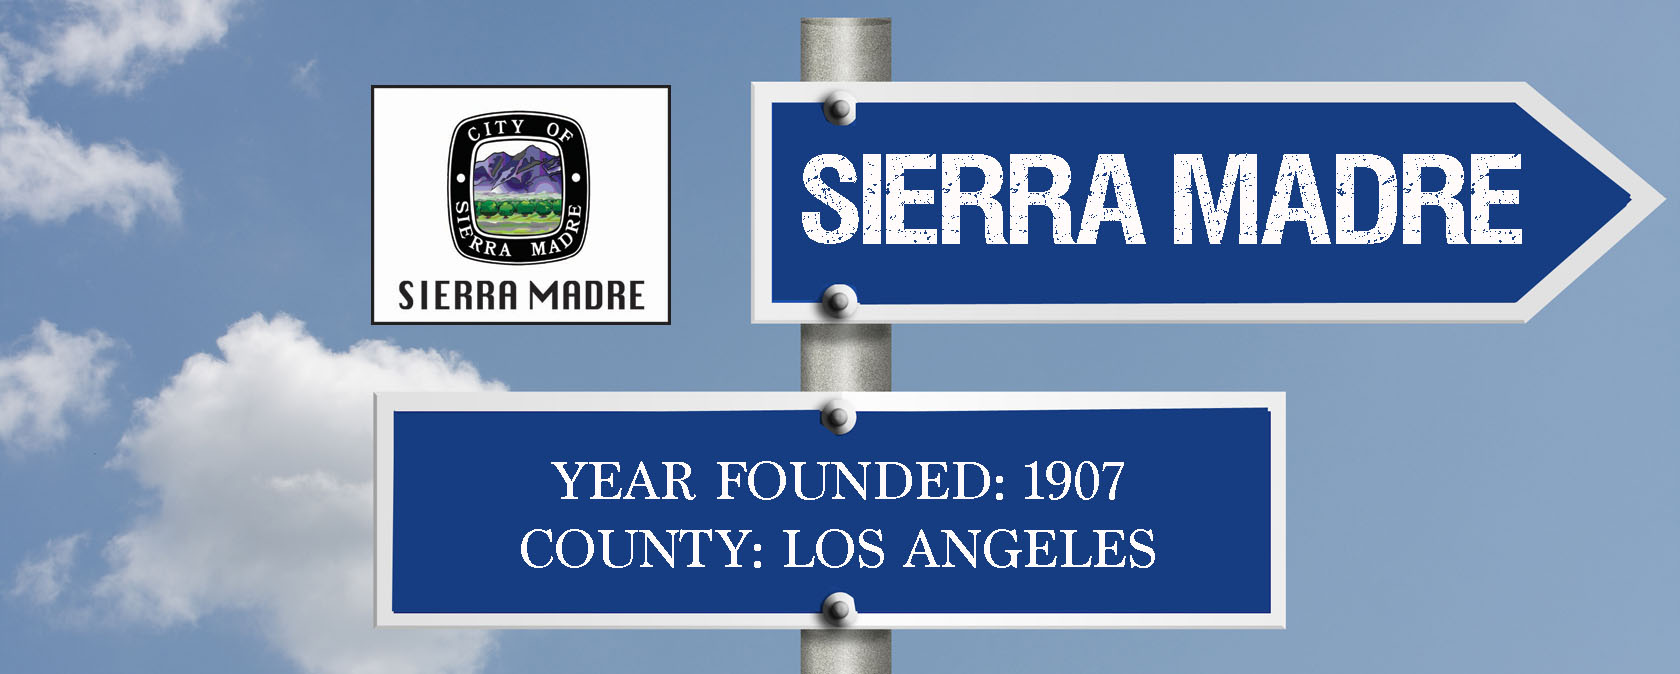 city sign-SIERRA MADRE